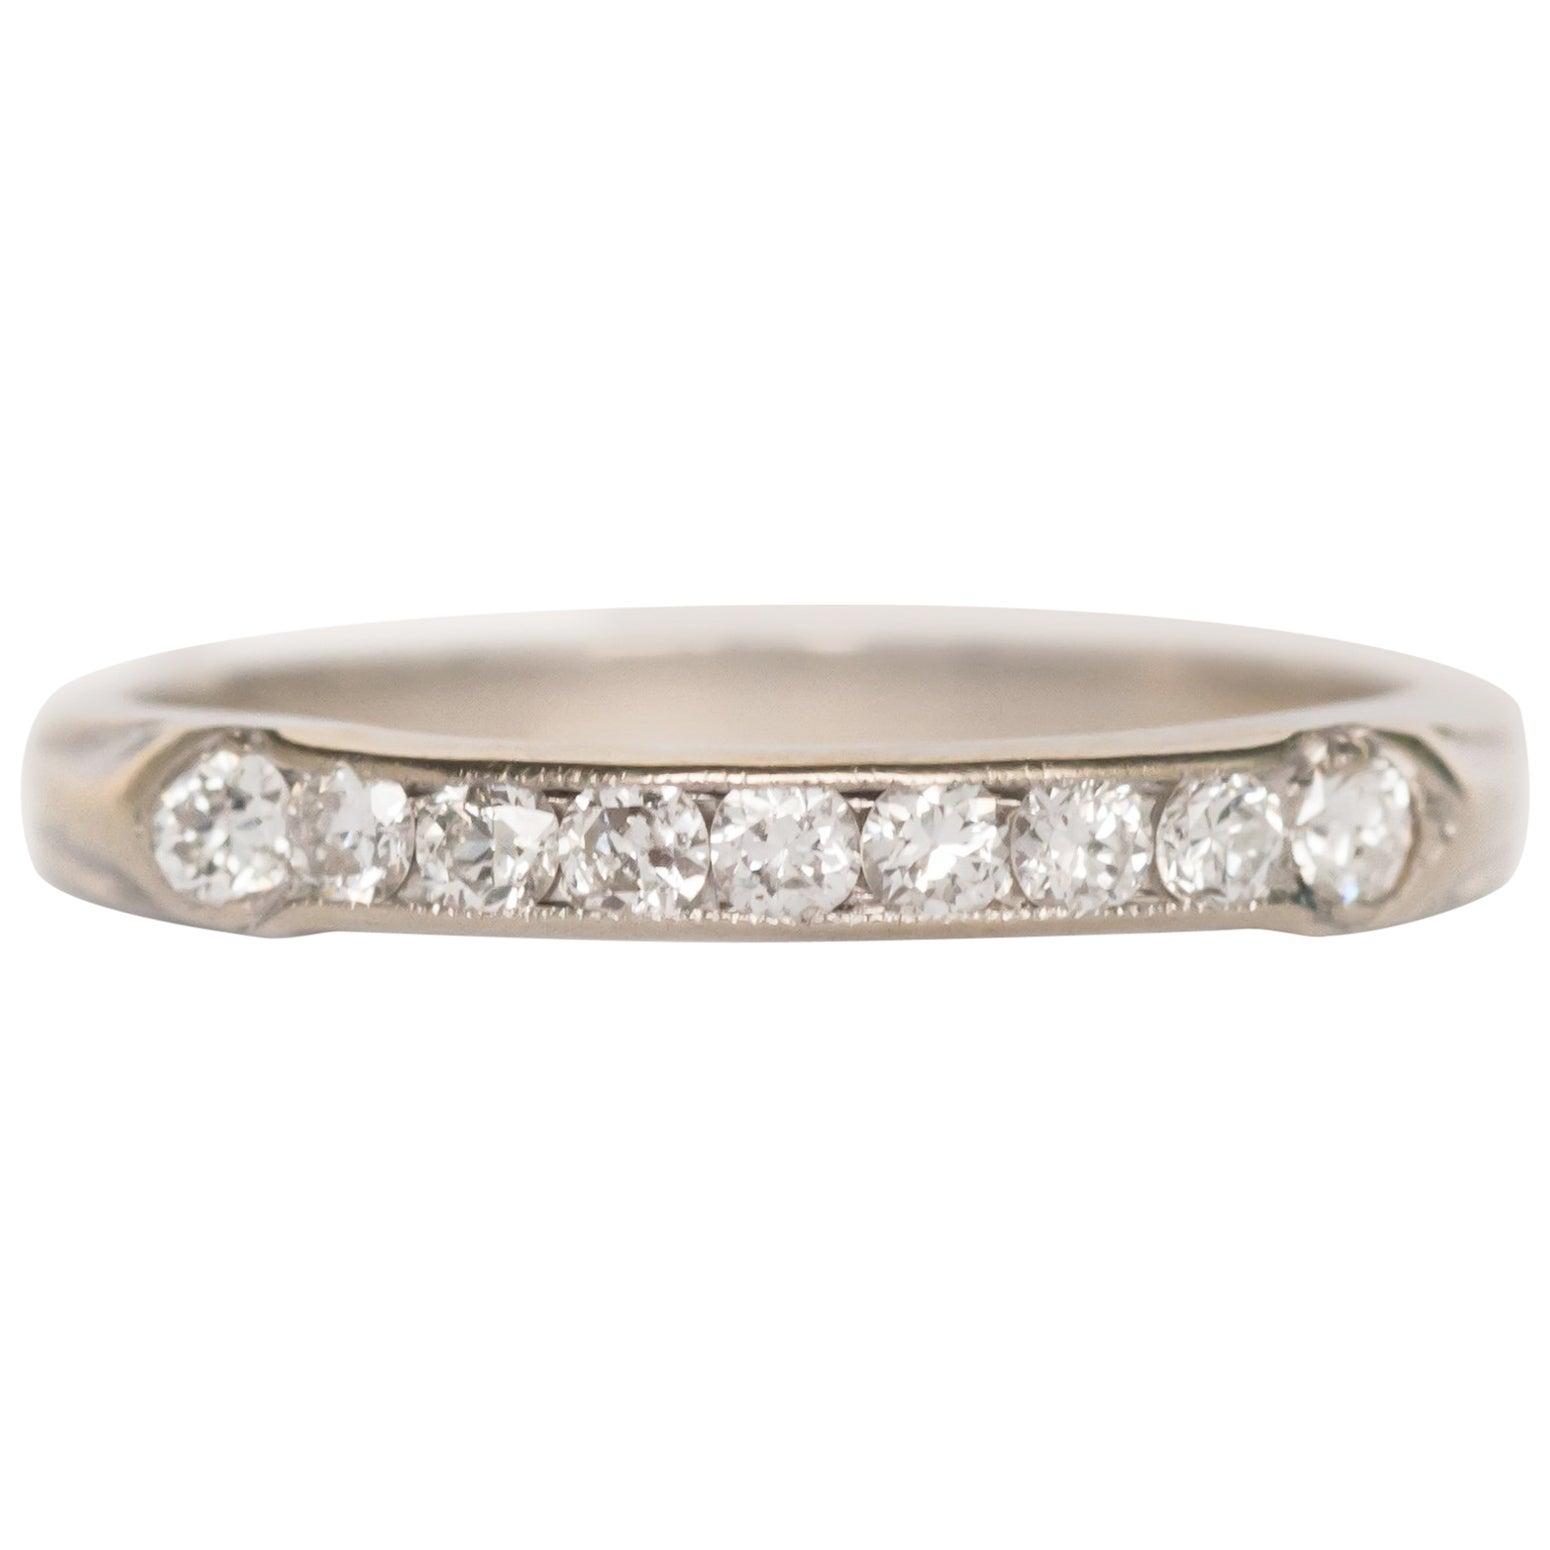 1920s Art Deco .10 Carat, Total Weight Diamond & Platinum Wedding Band